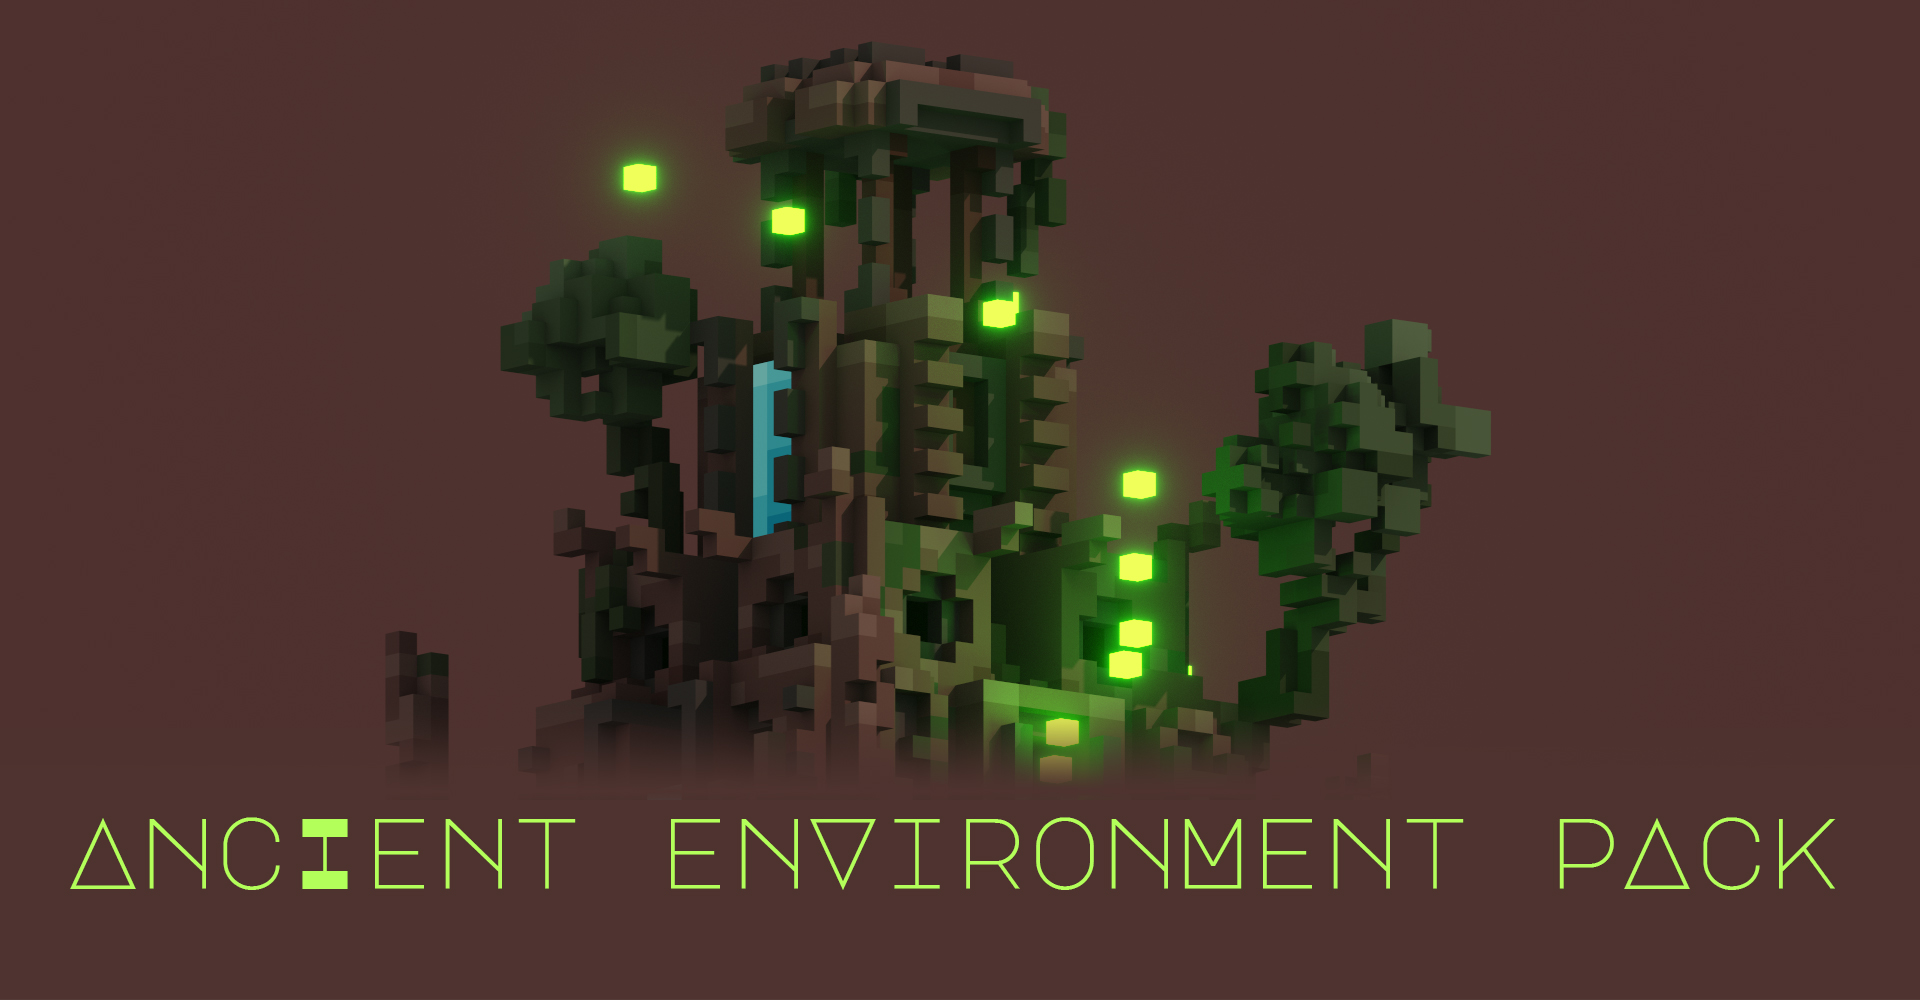 Voxel Ancient Environment pack for free